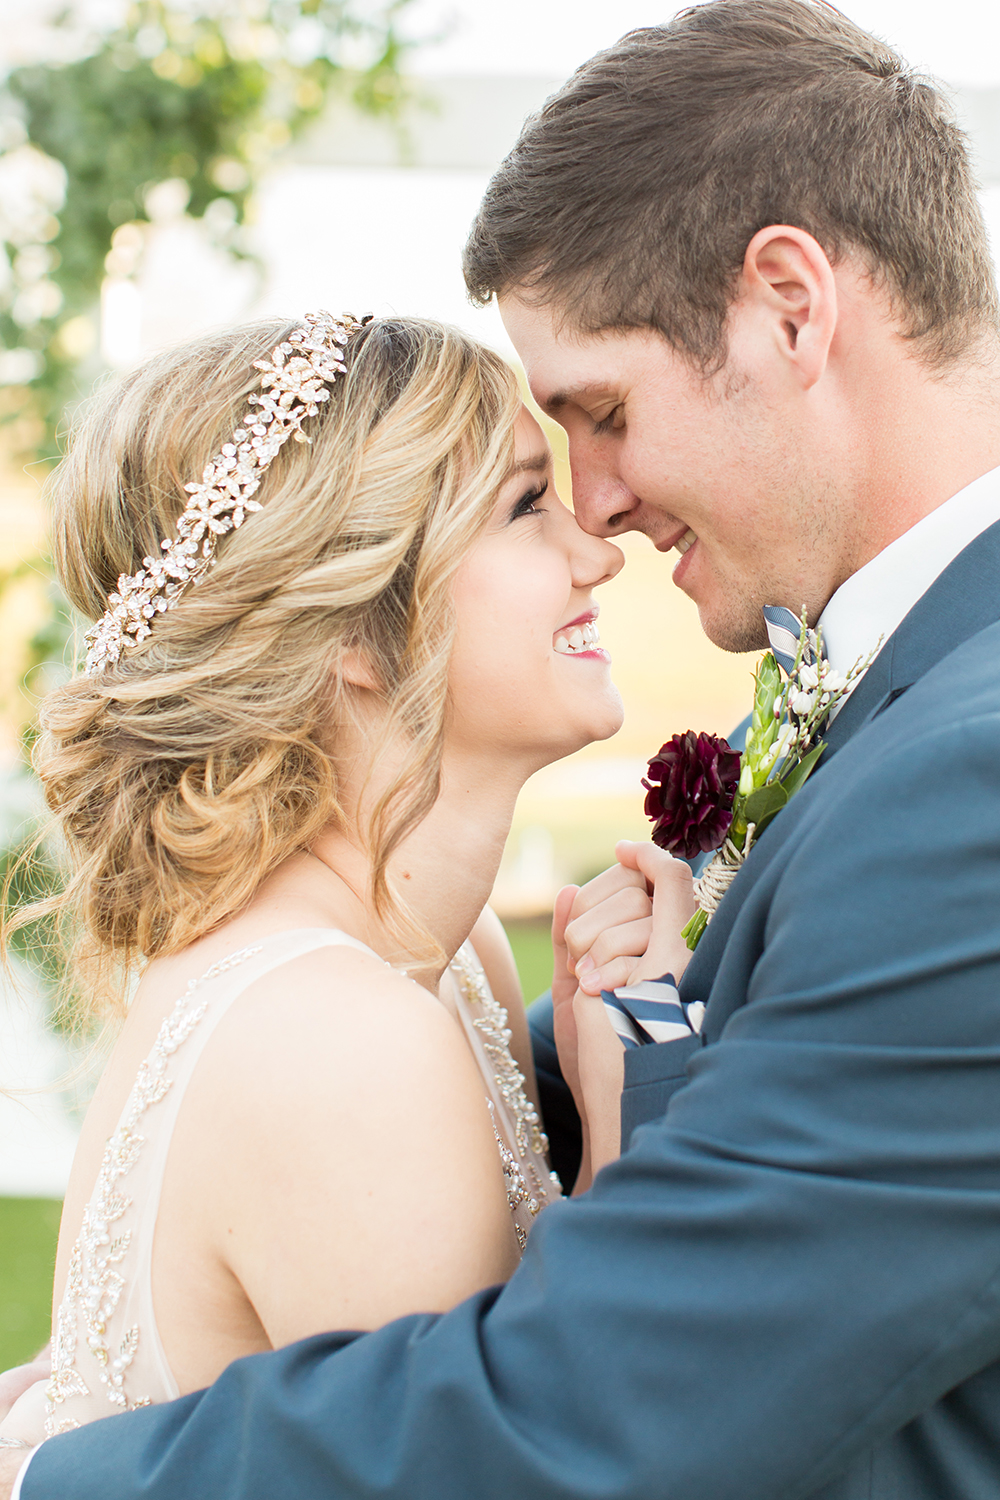 bride and groom - photo by Kasey Lynn Photography http://ruffledblog.com/birch-and-copper-wedding-inspiration-with-modern-romance